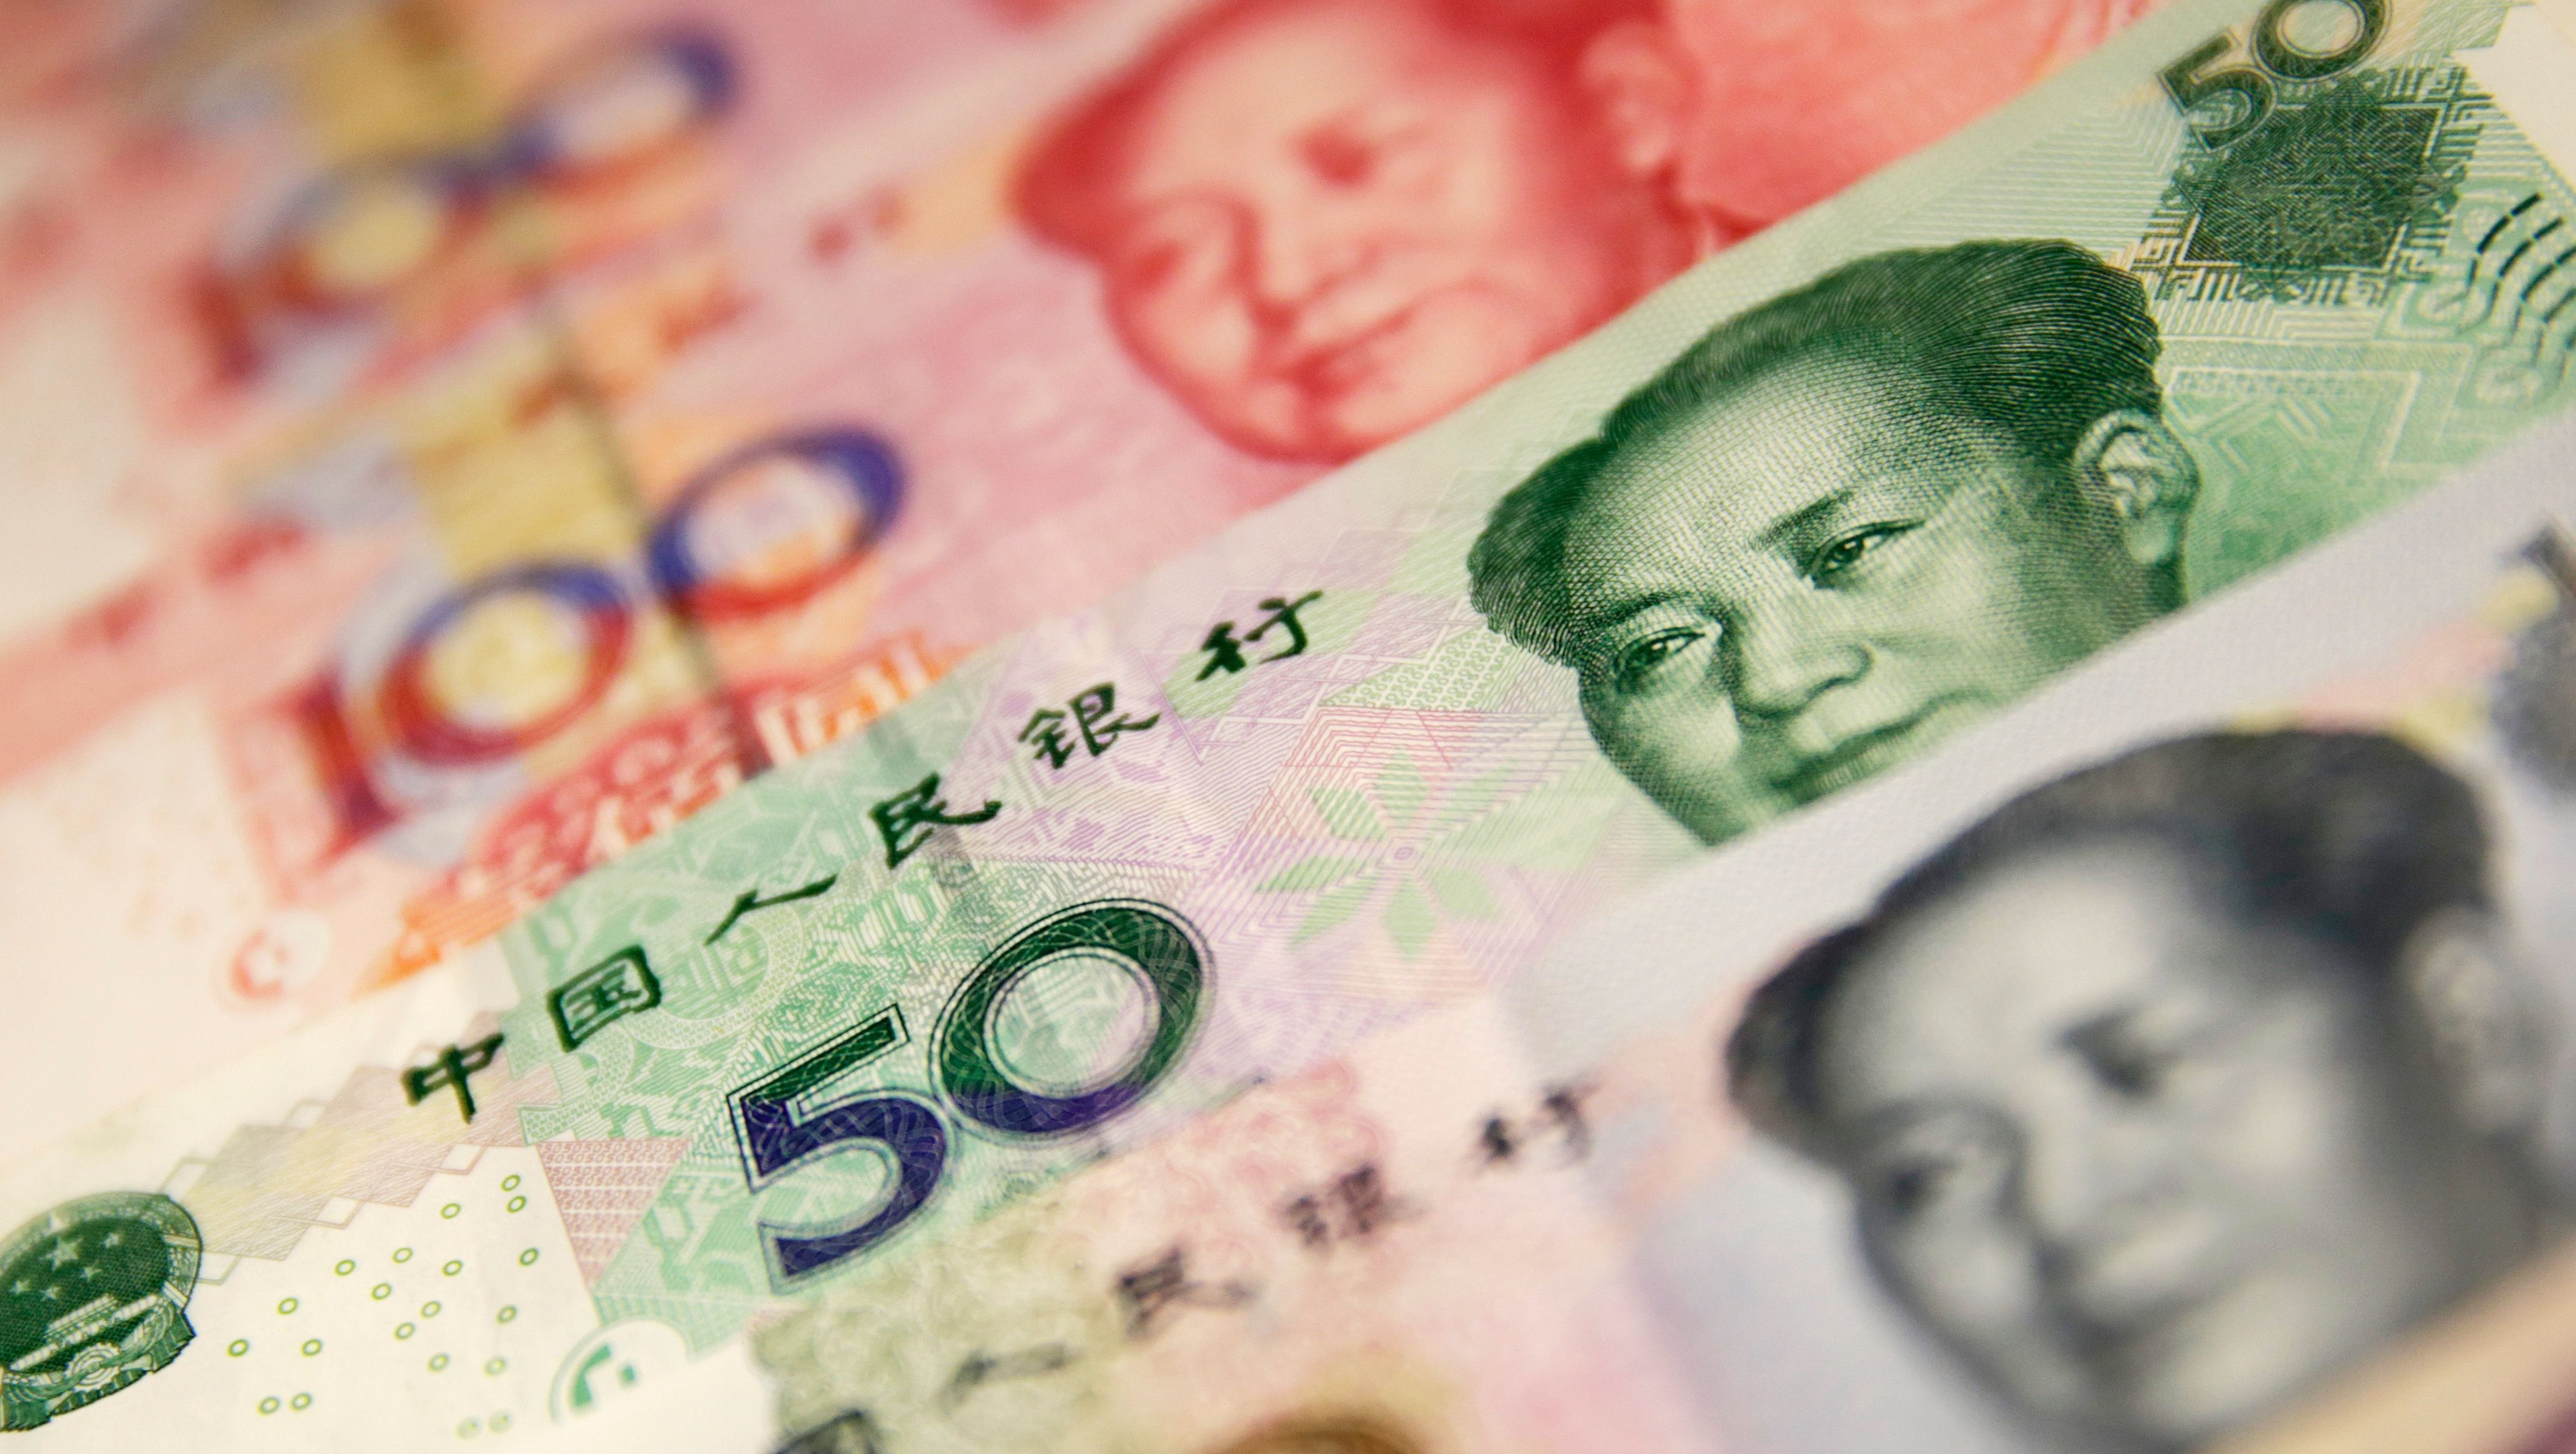 Chinese yuan or renminbi (RMB) notes in Beijing, China, 29 December 2015. China's currency fell to its weakest in more than four and a half years on 29 December 2015. The yuan, also known as the renminbi, dropped 114 basis points to 6.4864 against the US dollar on 29 December, its weakest since June 2011, according to data from the China Foreign Exchange Trading System.